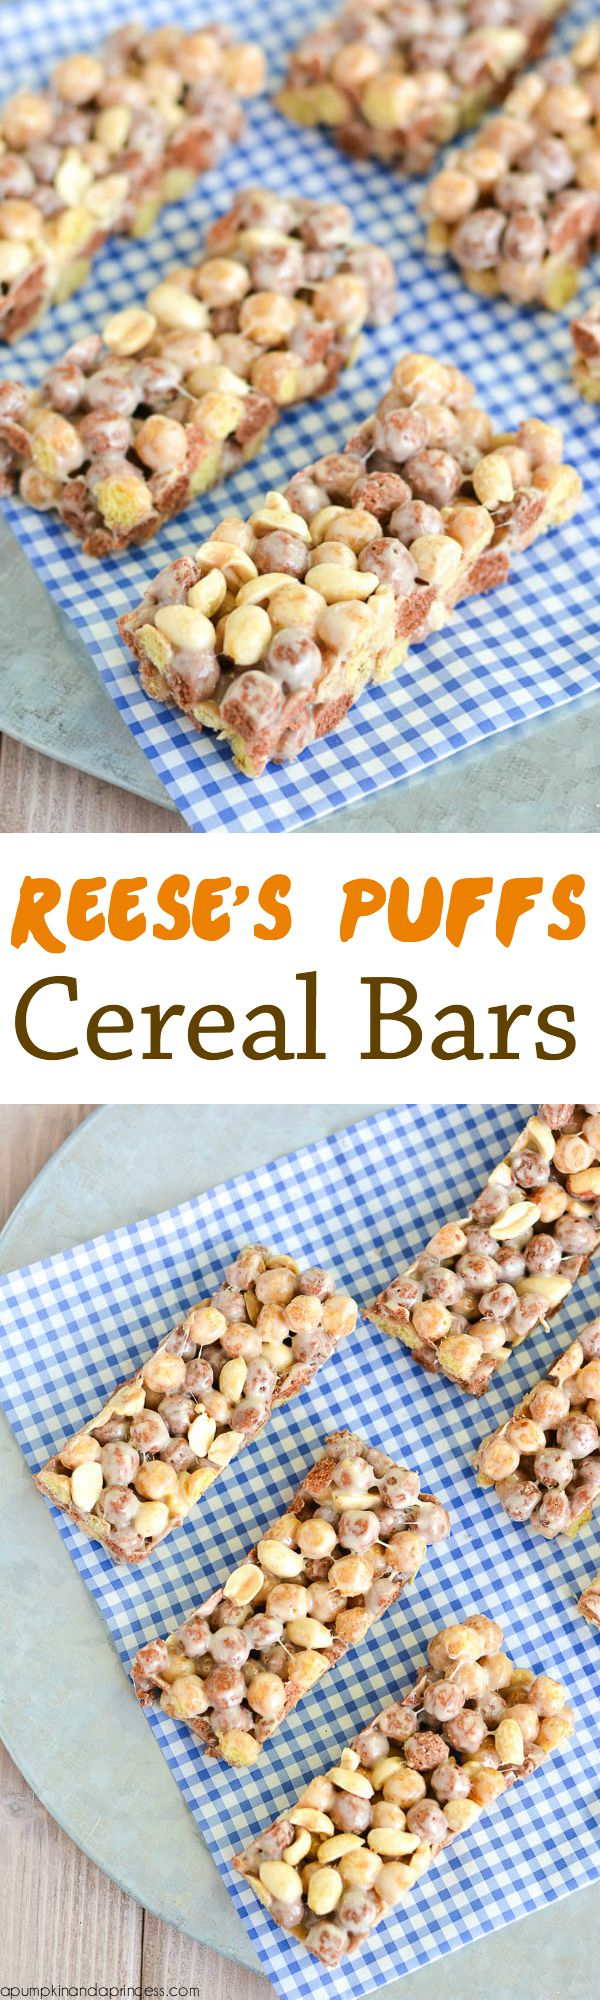 Reese's Puff Cereal Bars